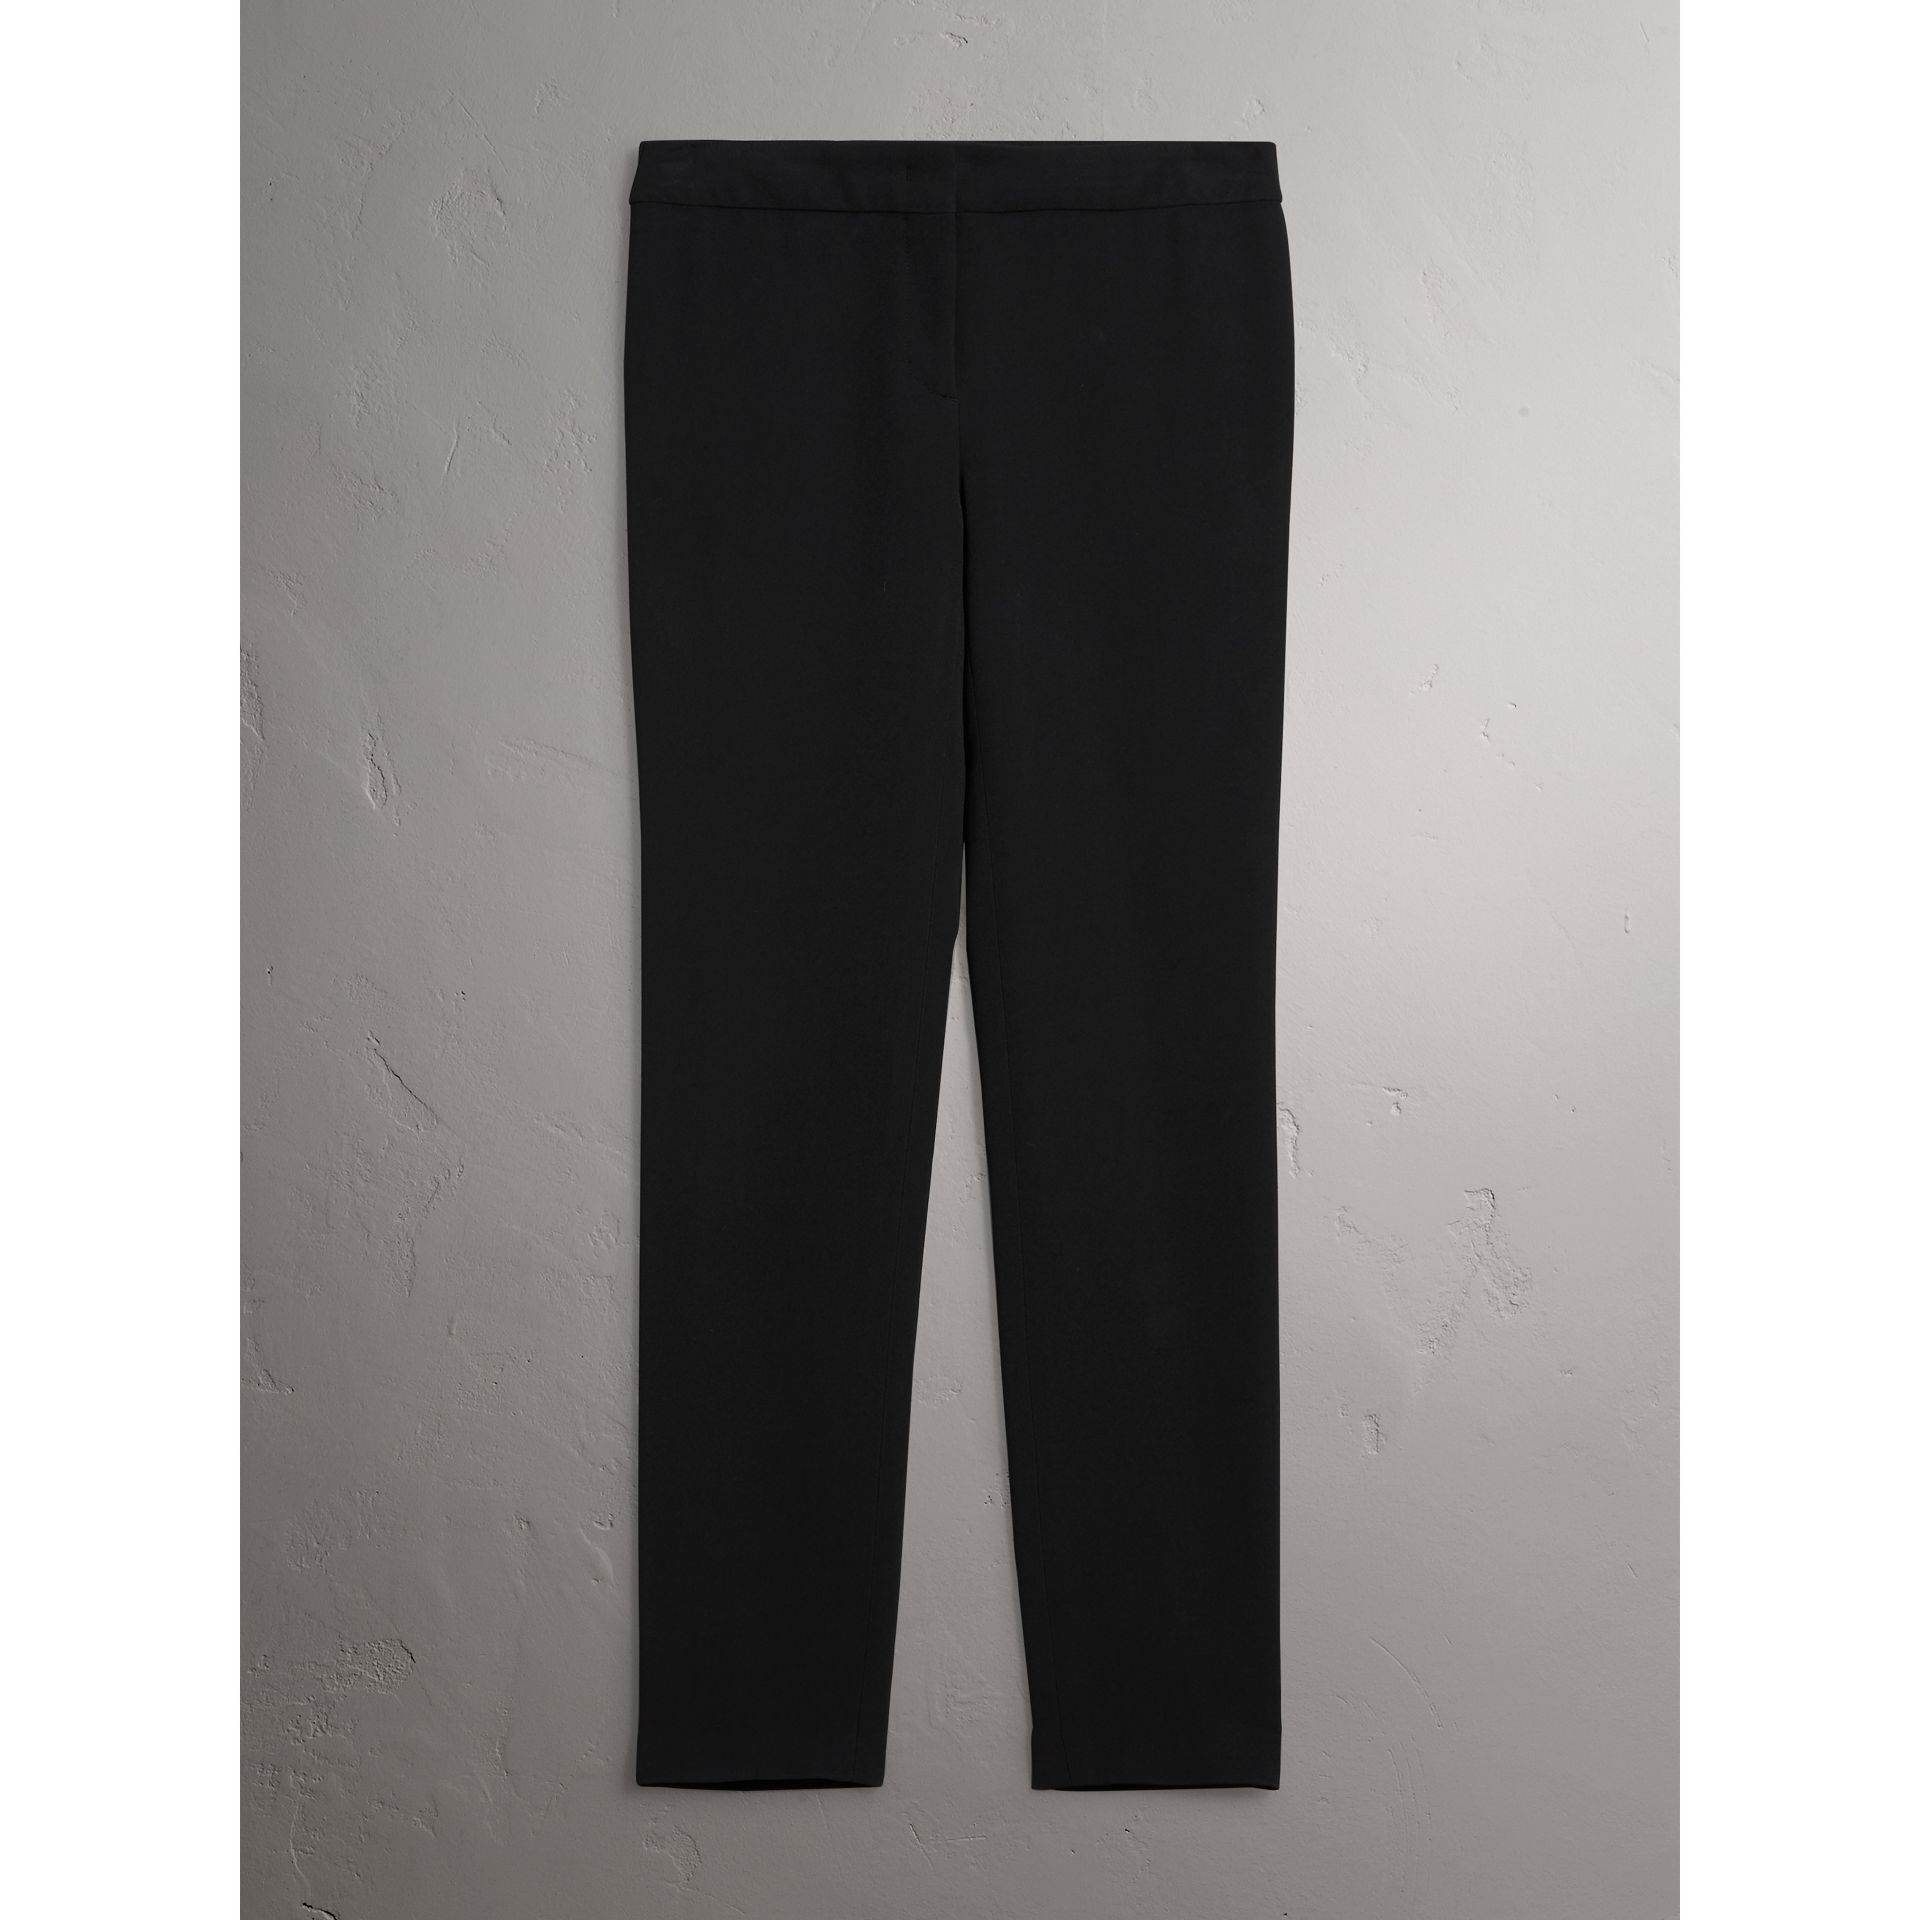 Slim Fit Faille Trousers in Black - Women | Burberry - gallery image 4